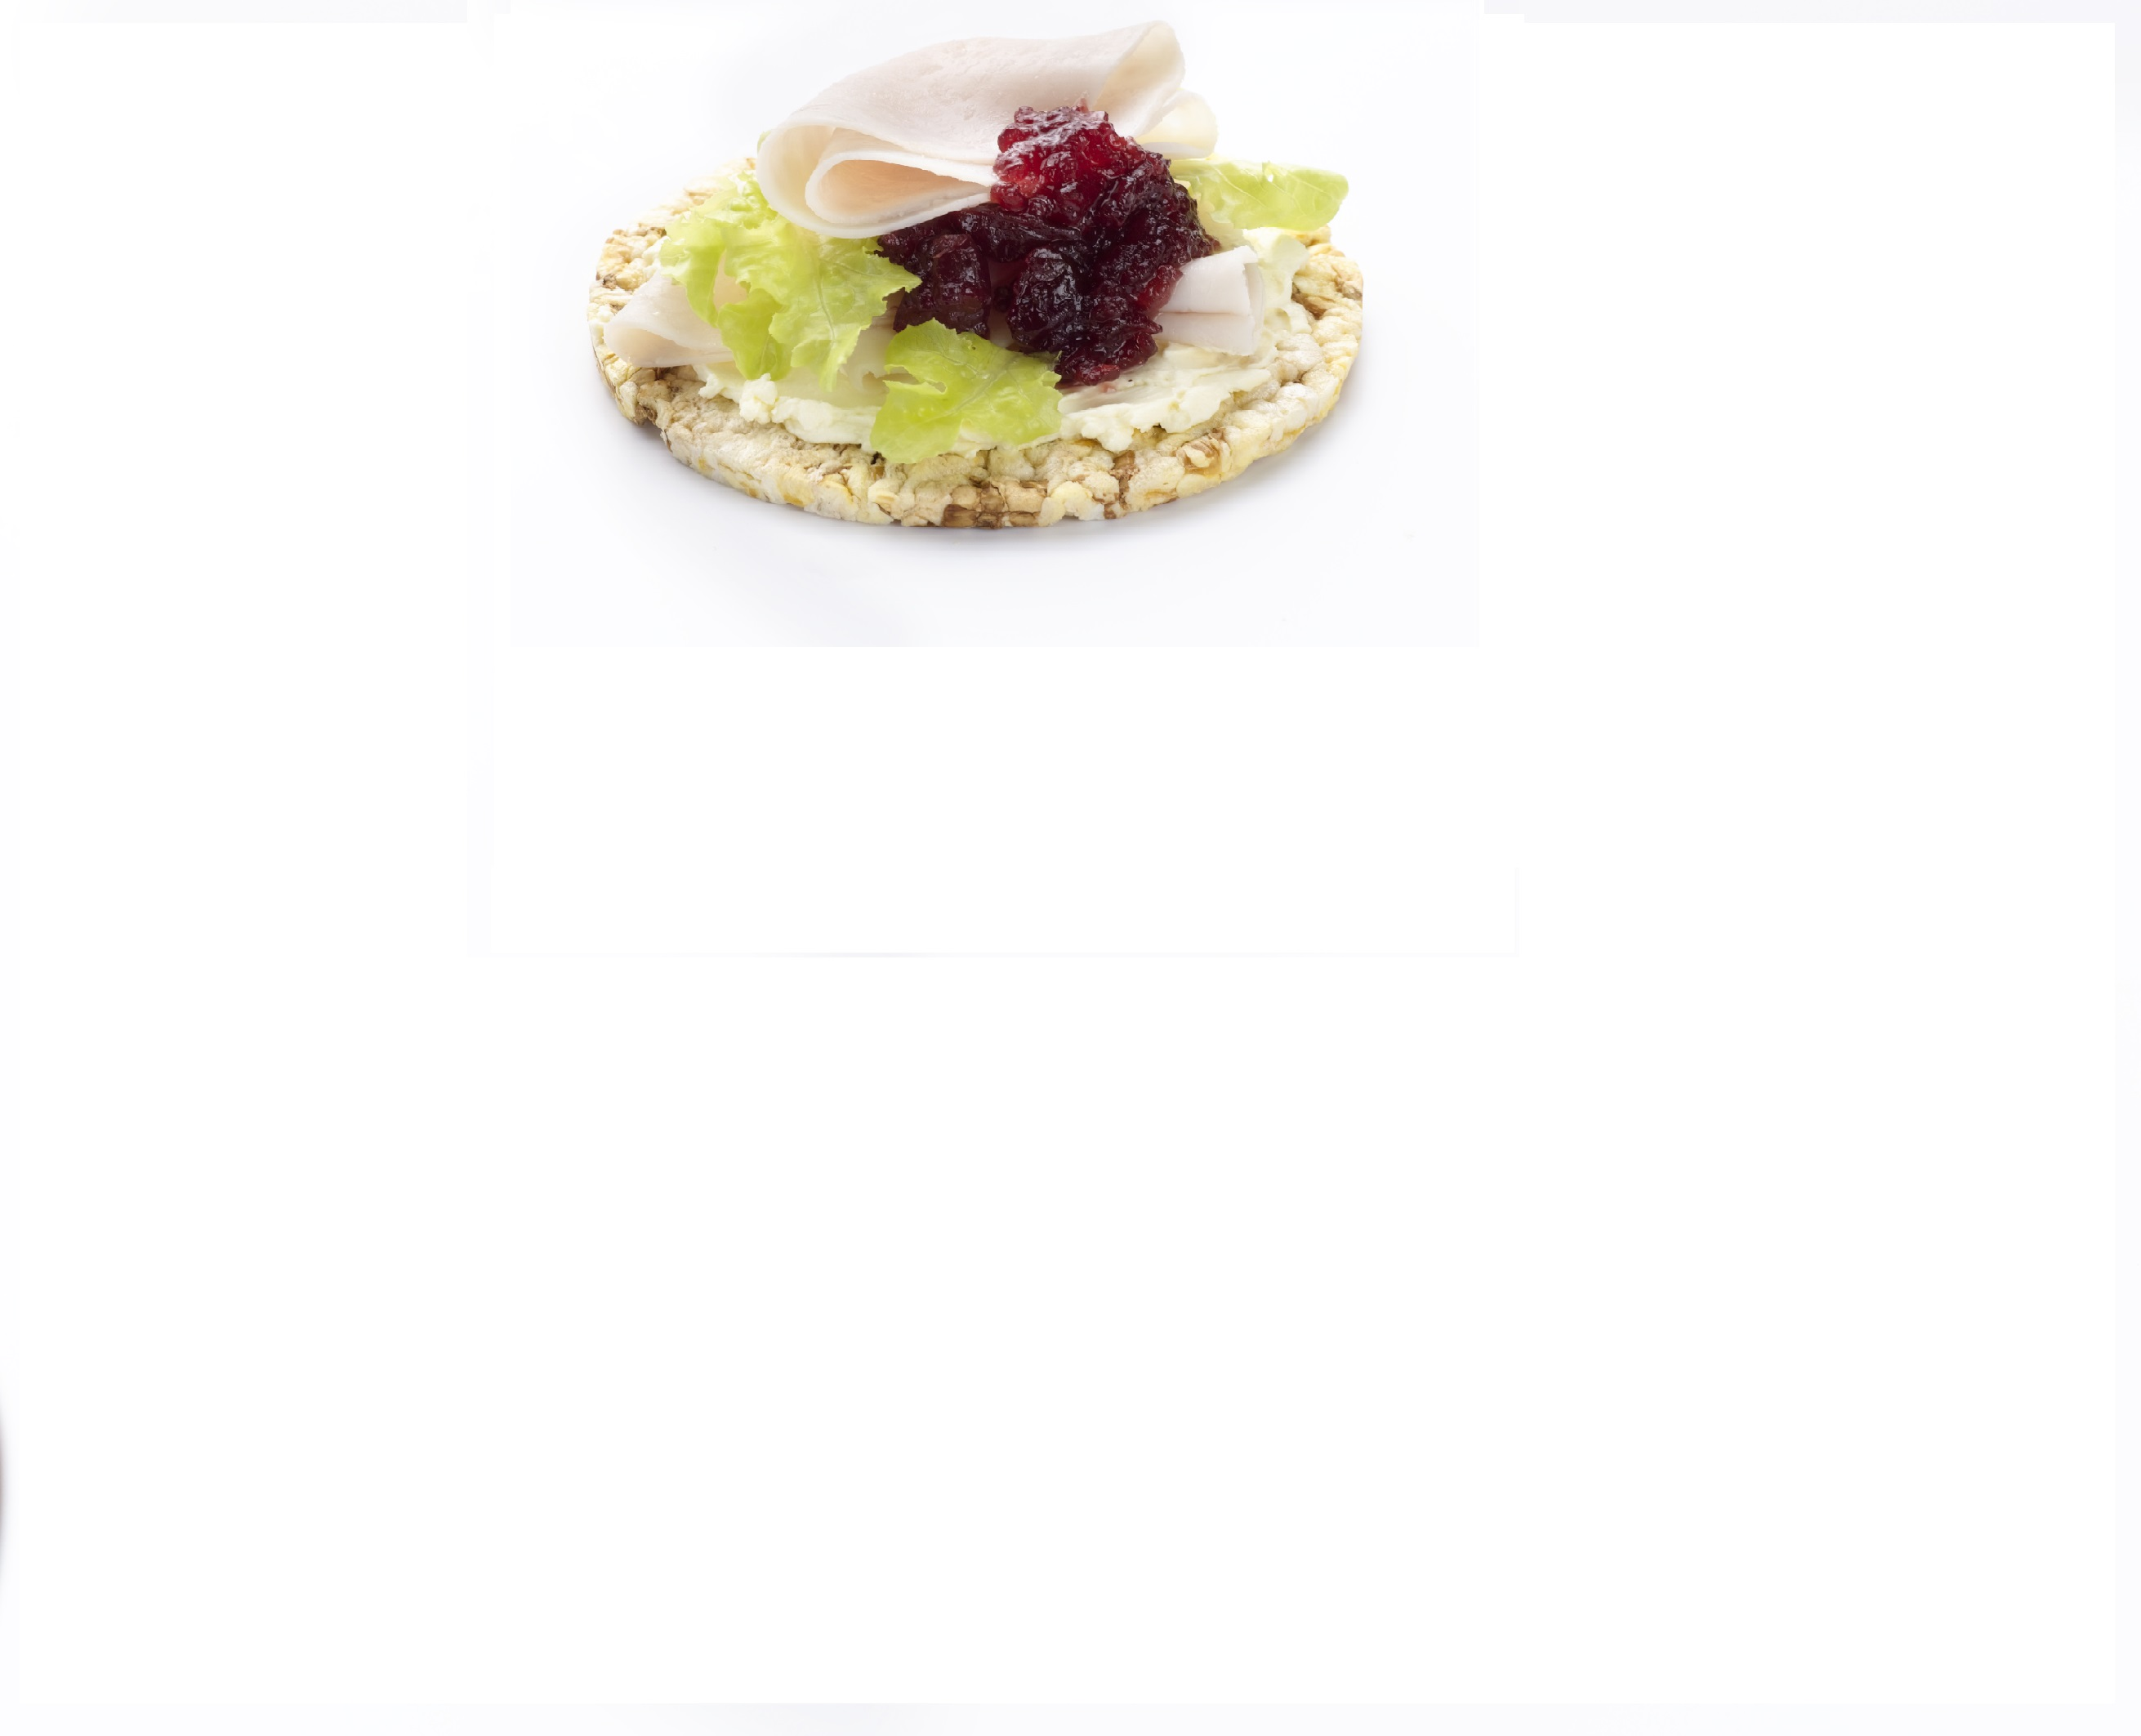 Quick lunch of creamed cheese, turkey & cranberry on Corn Thins slices